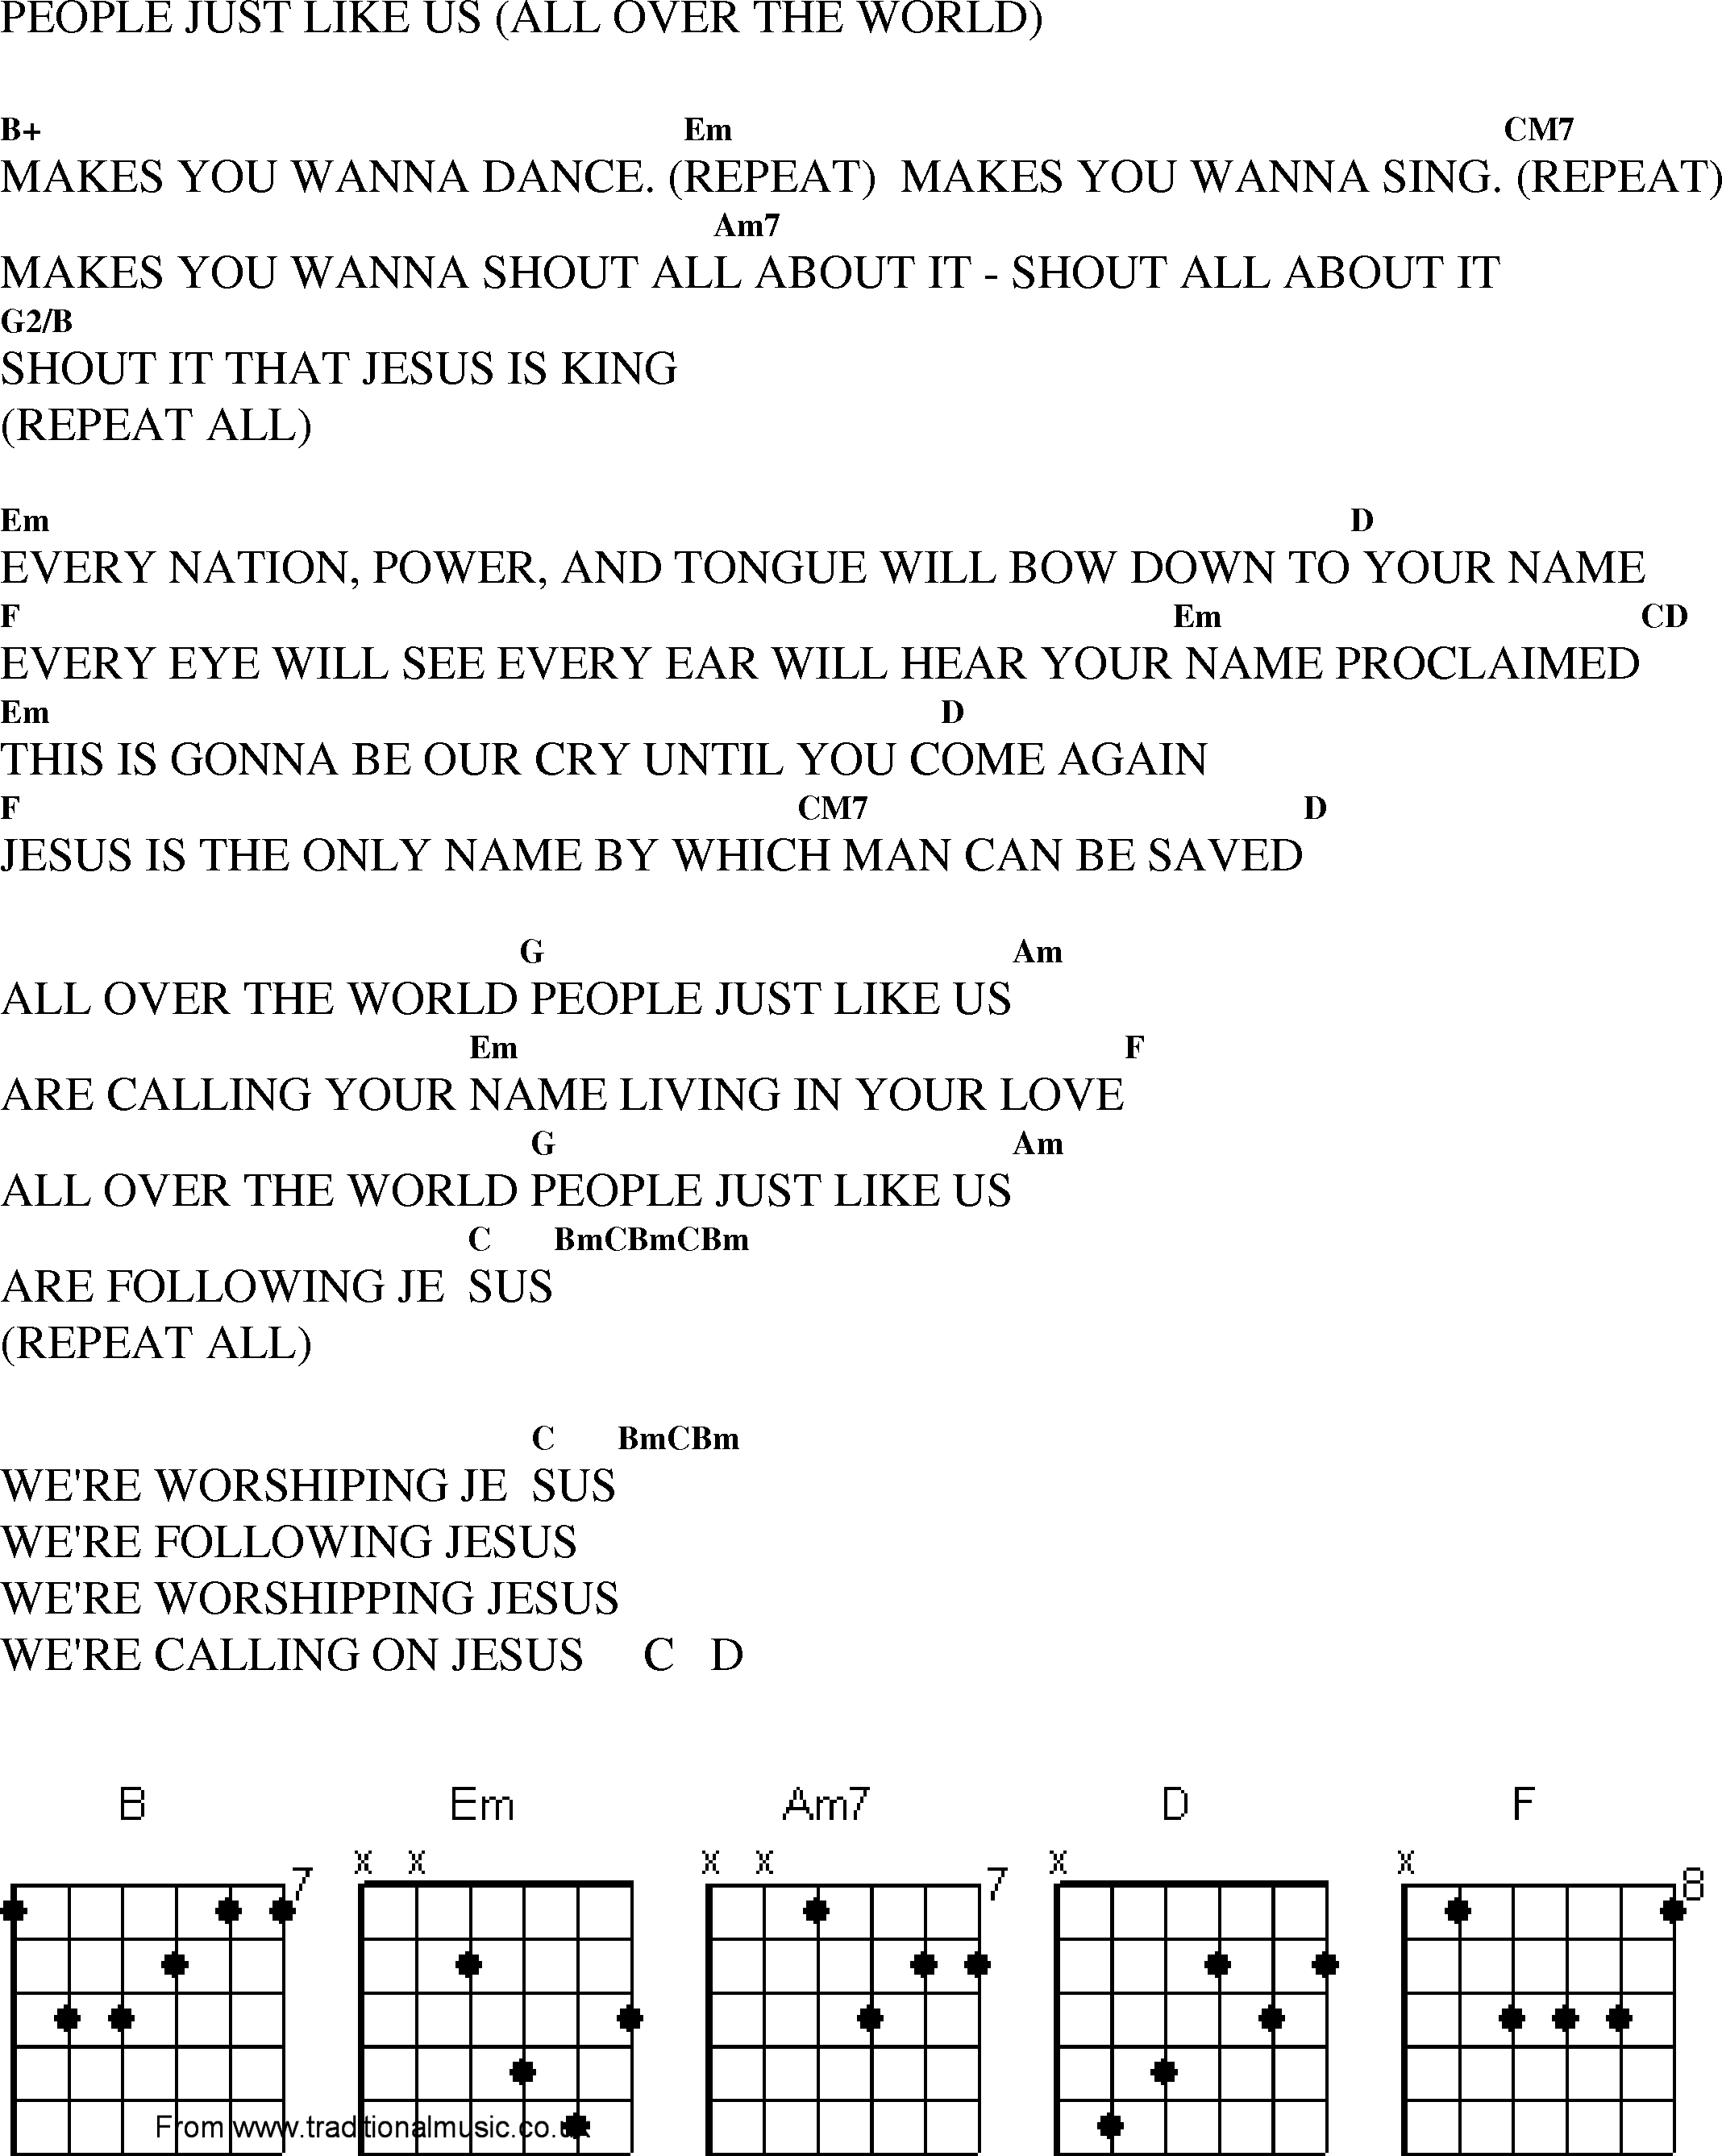 Christian Gospel Worship Song Lyrics with Chords - People